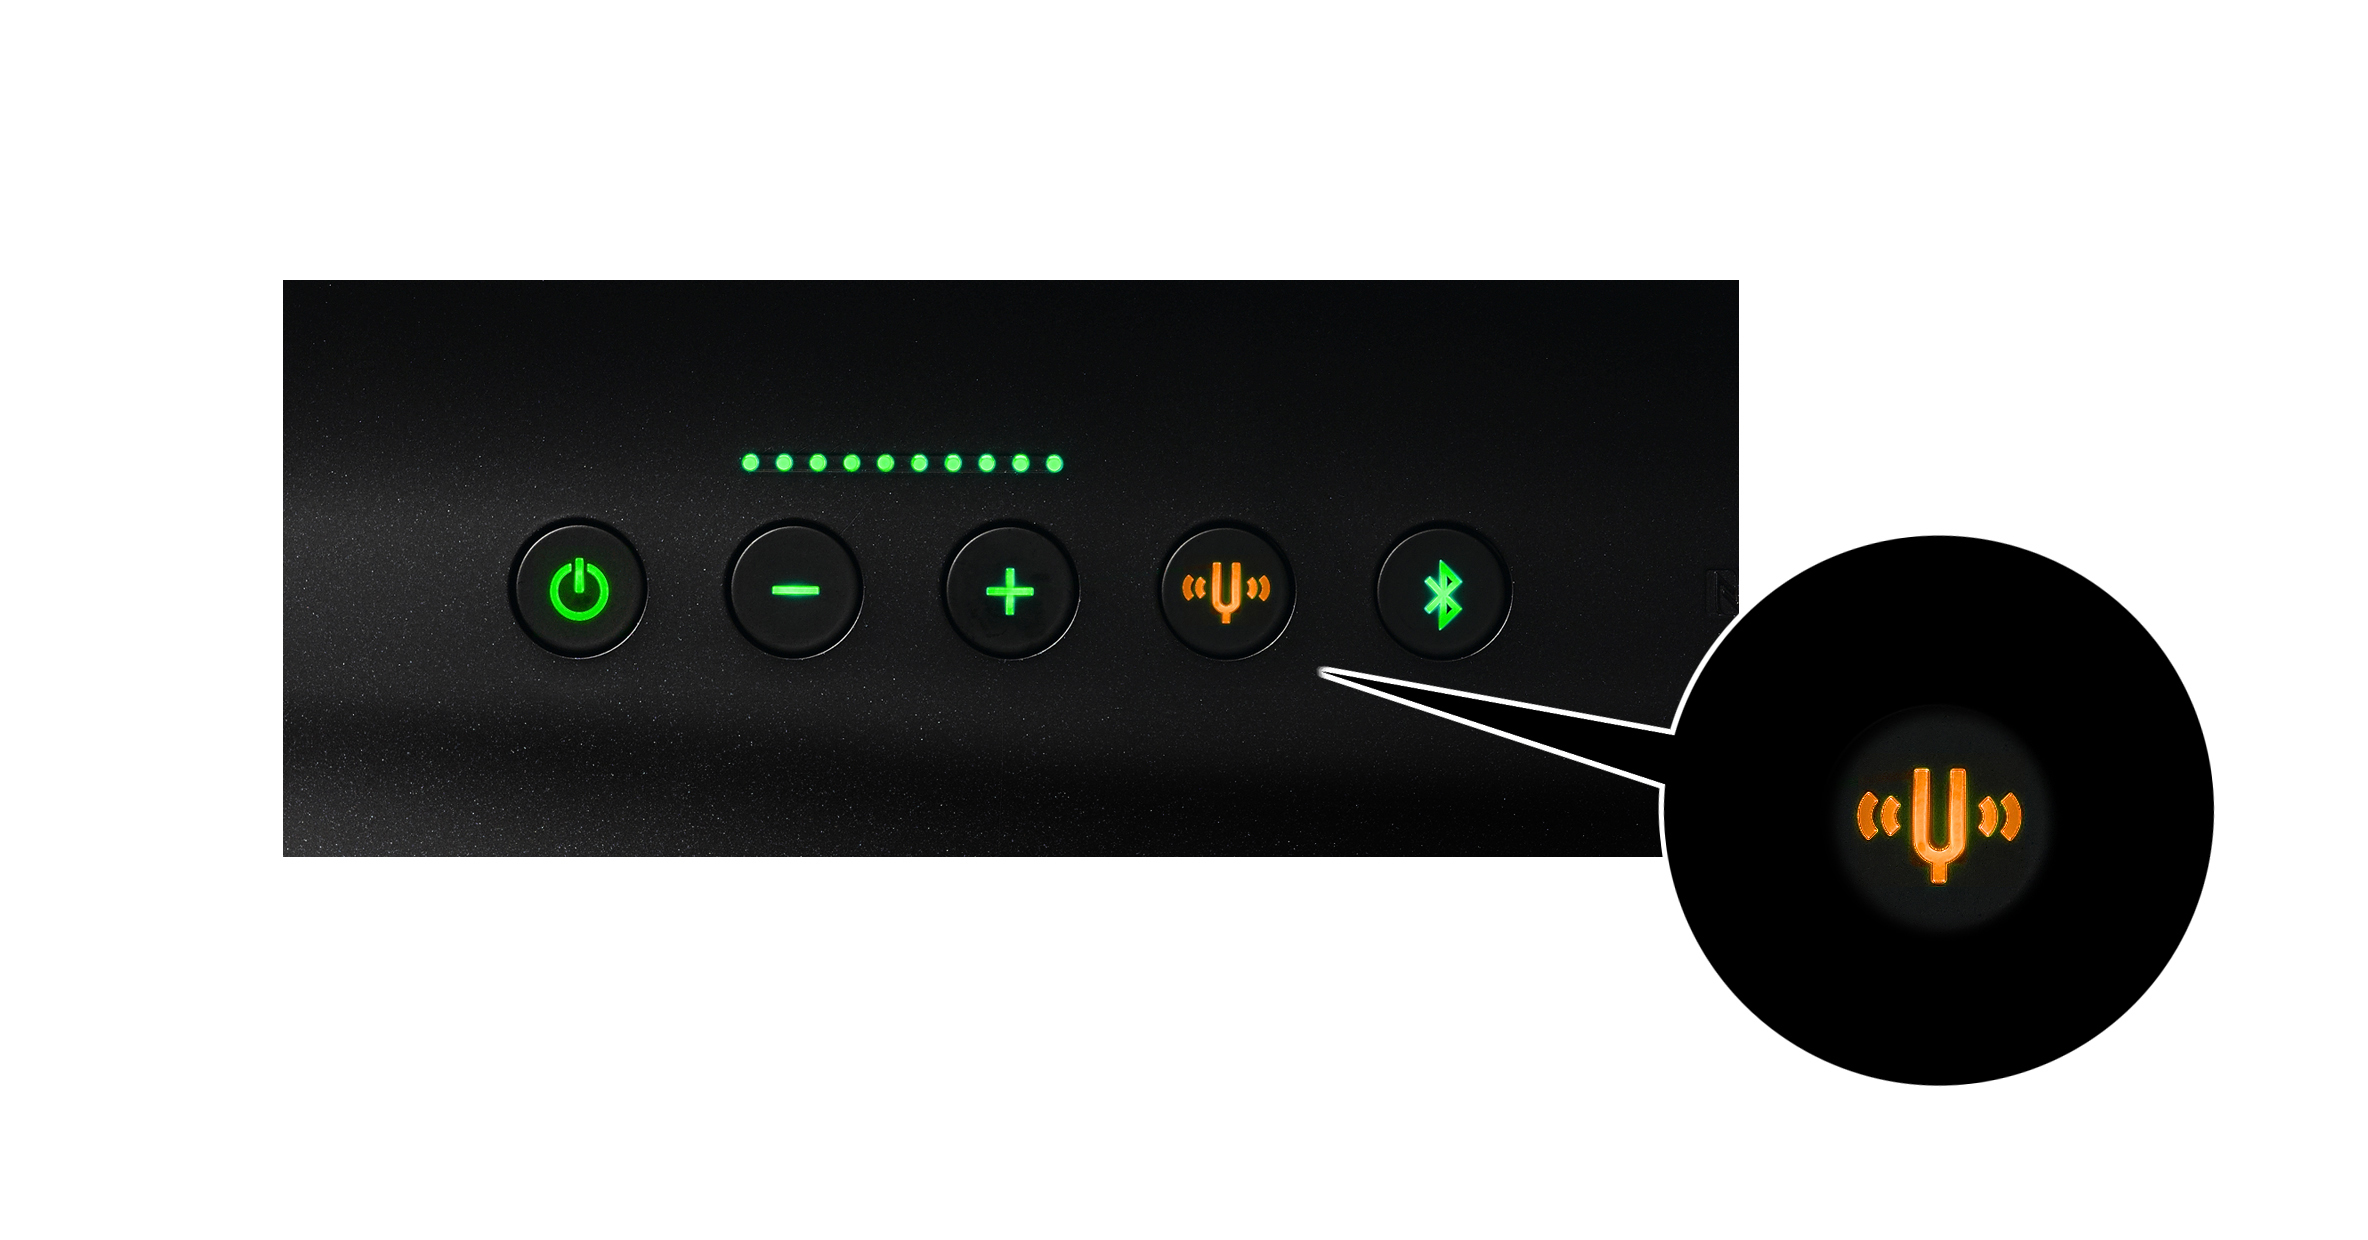 Simply pressing the tuning fork button activates the automatic acoustic adjustment function of YVC-1000, immediately optimizing the acoustic settings for your current environment. (Photo: Business Wire)